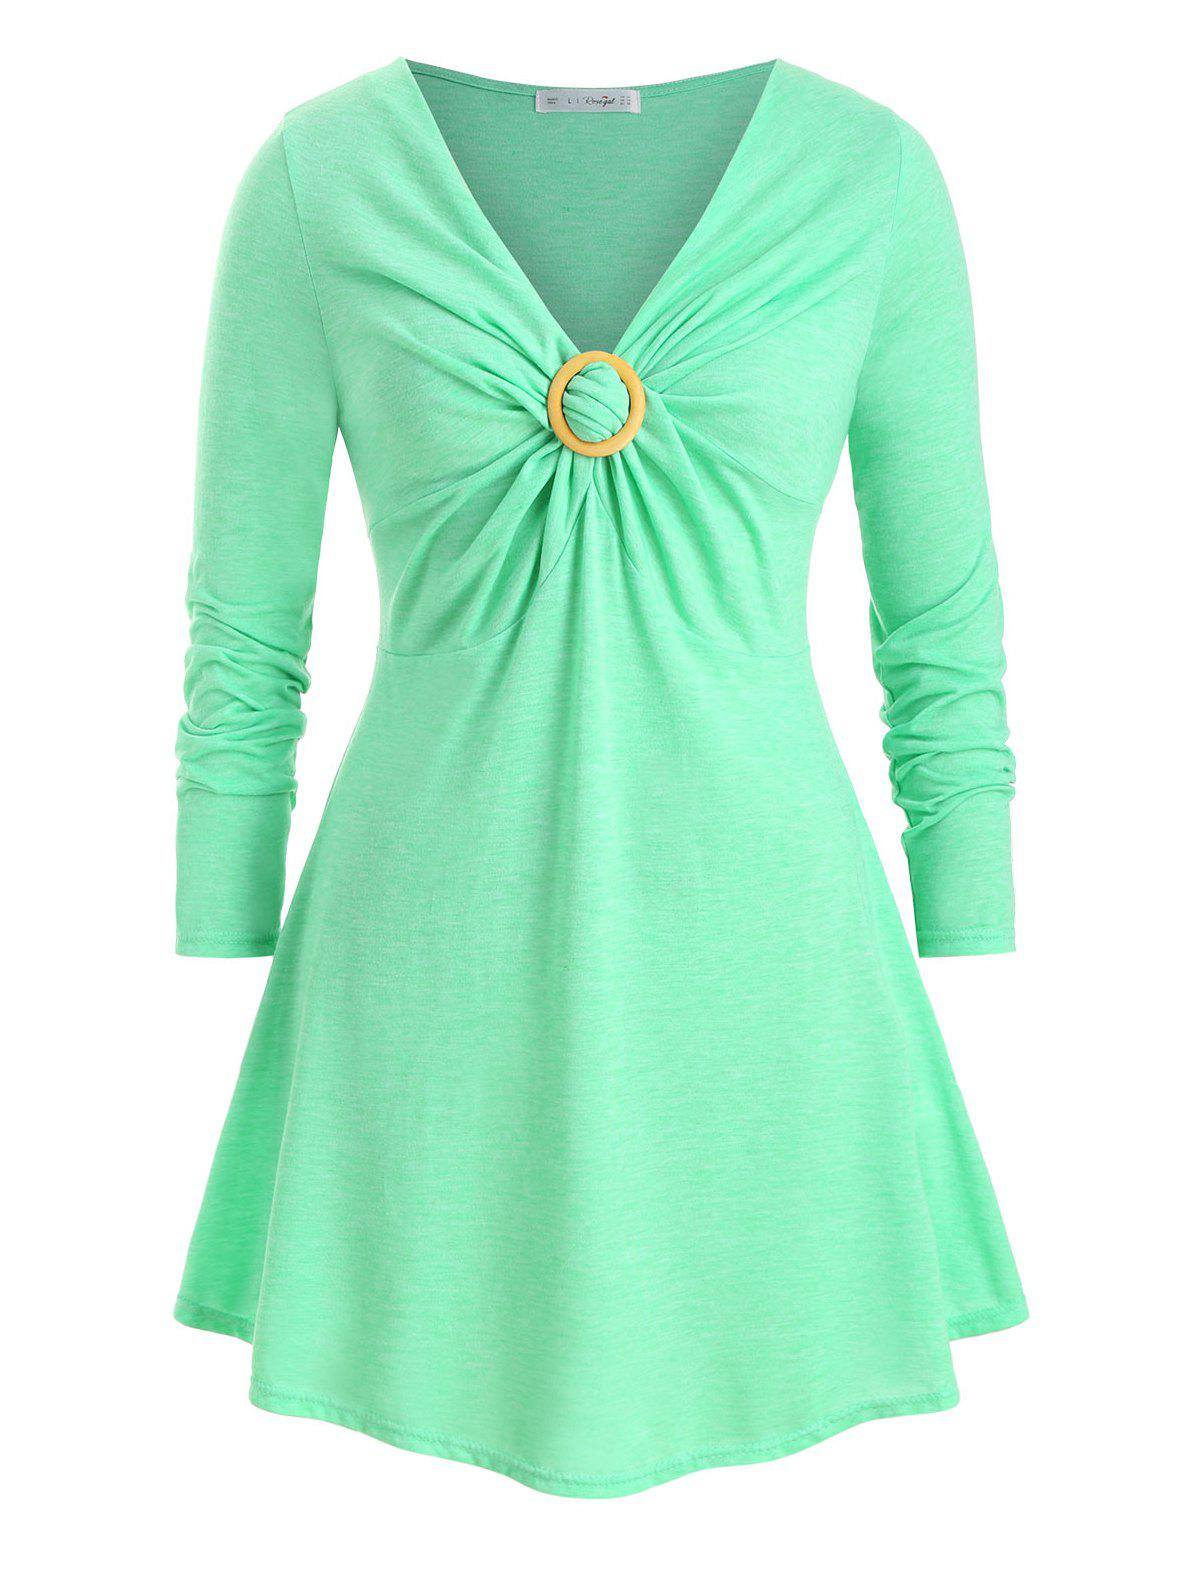 O Ring Twisted Front V Neck Plus Size Longline Top - GREEN 5X